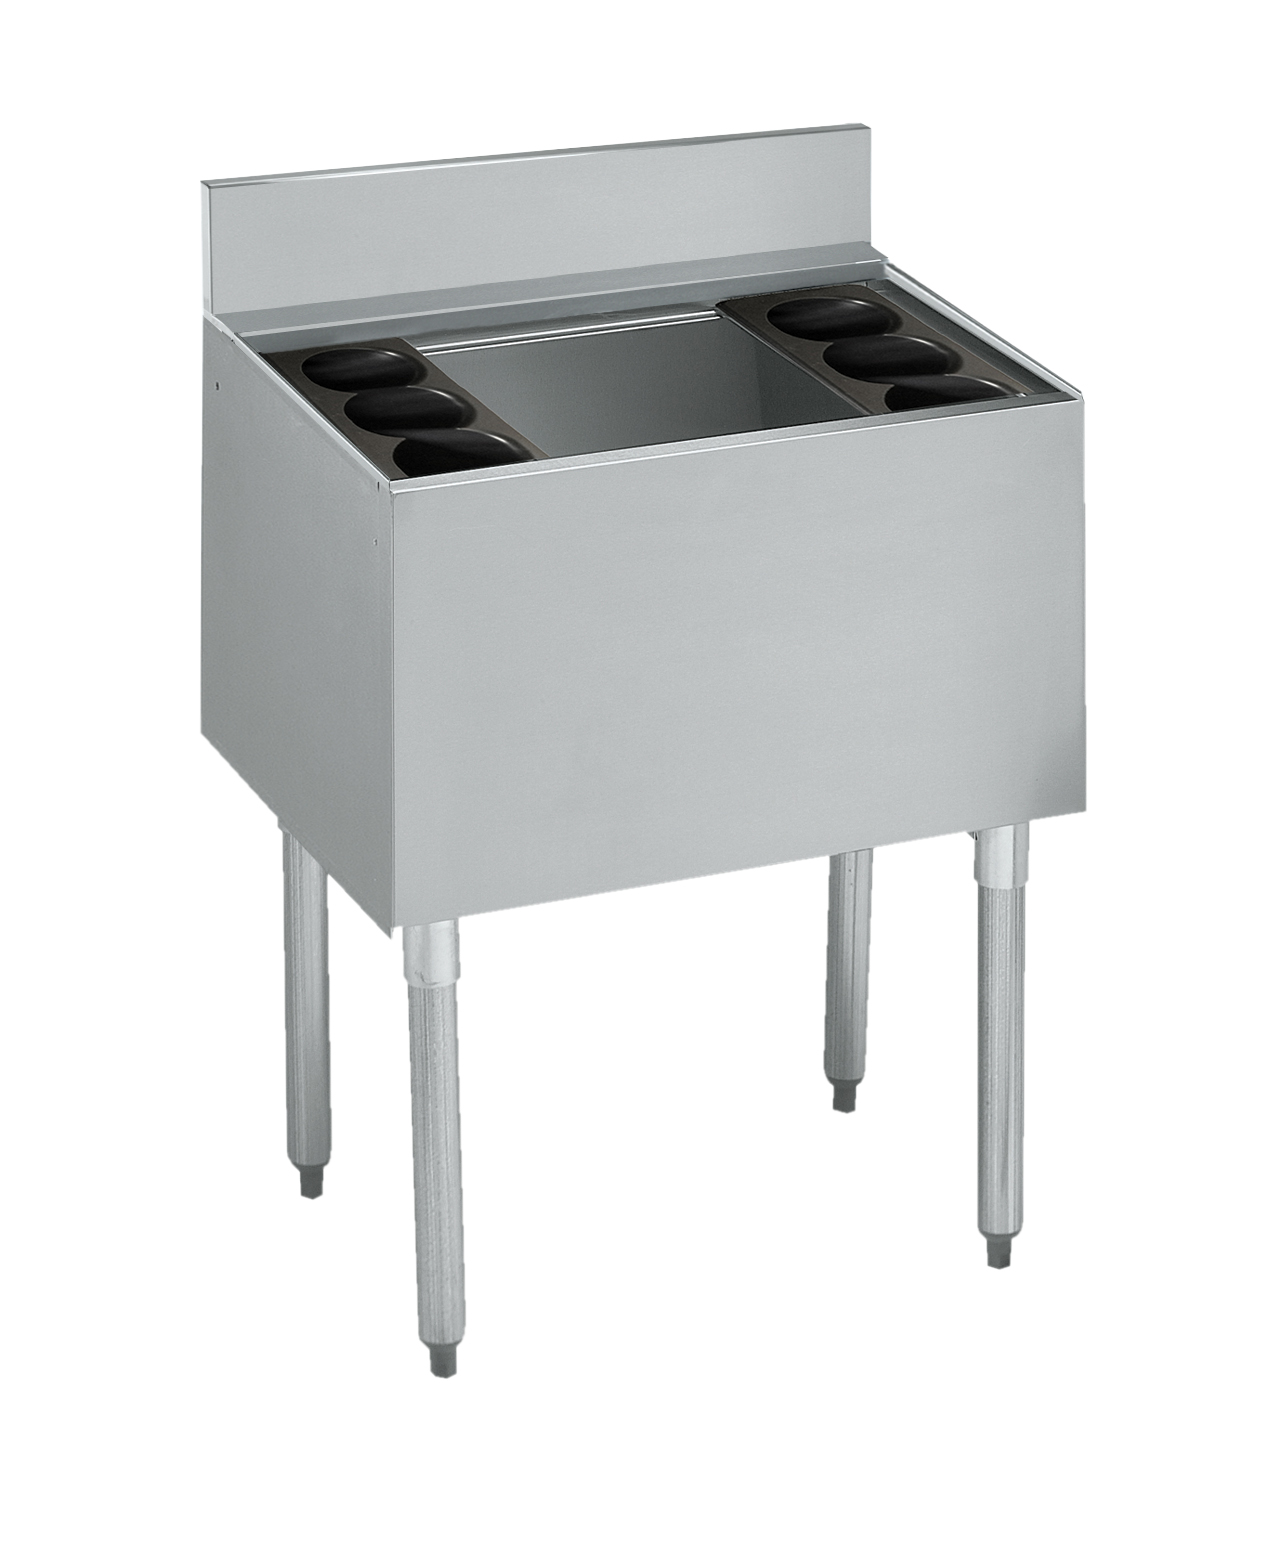 Krowne Metal 21-24 underbar ice bin/cocktail unit